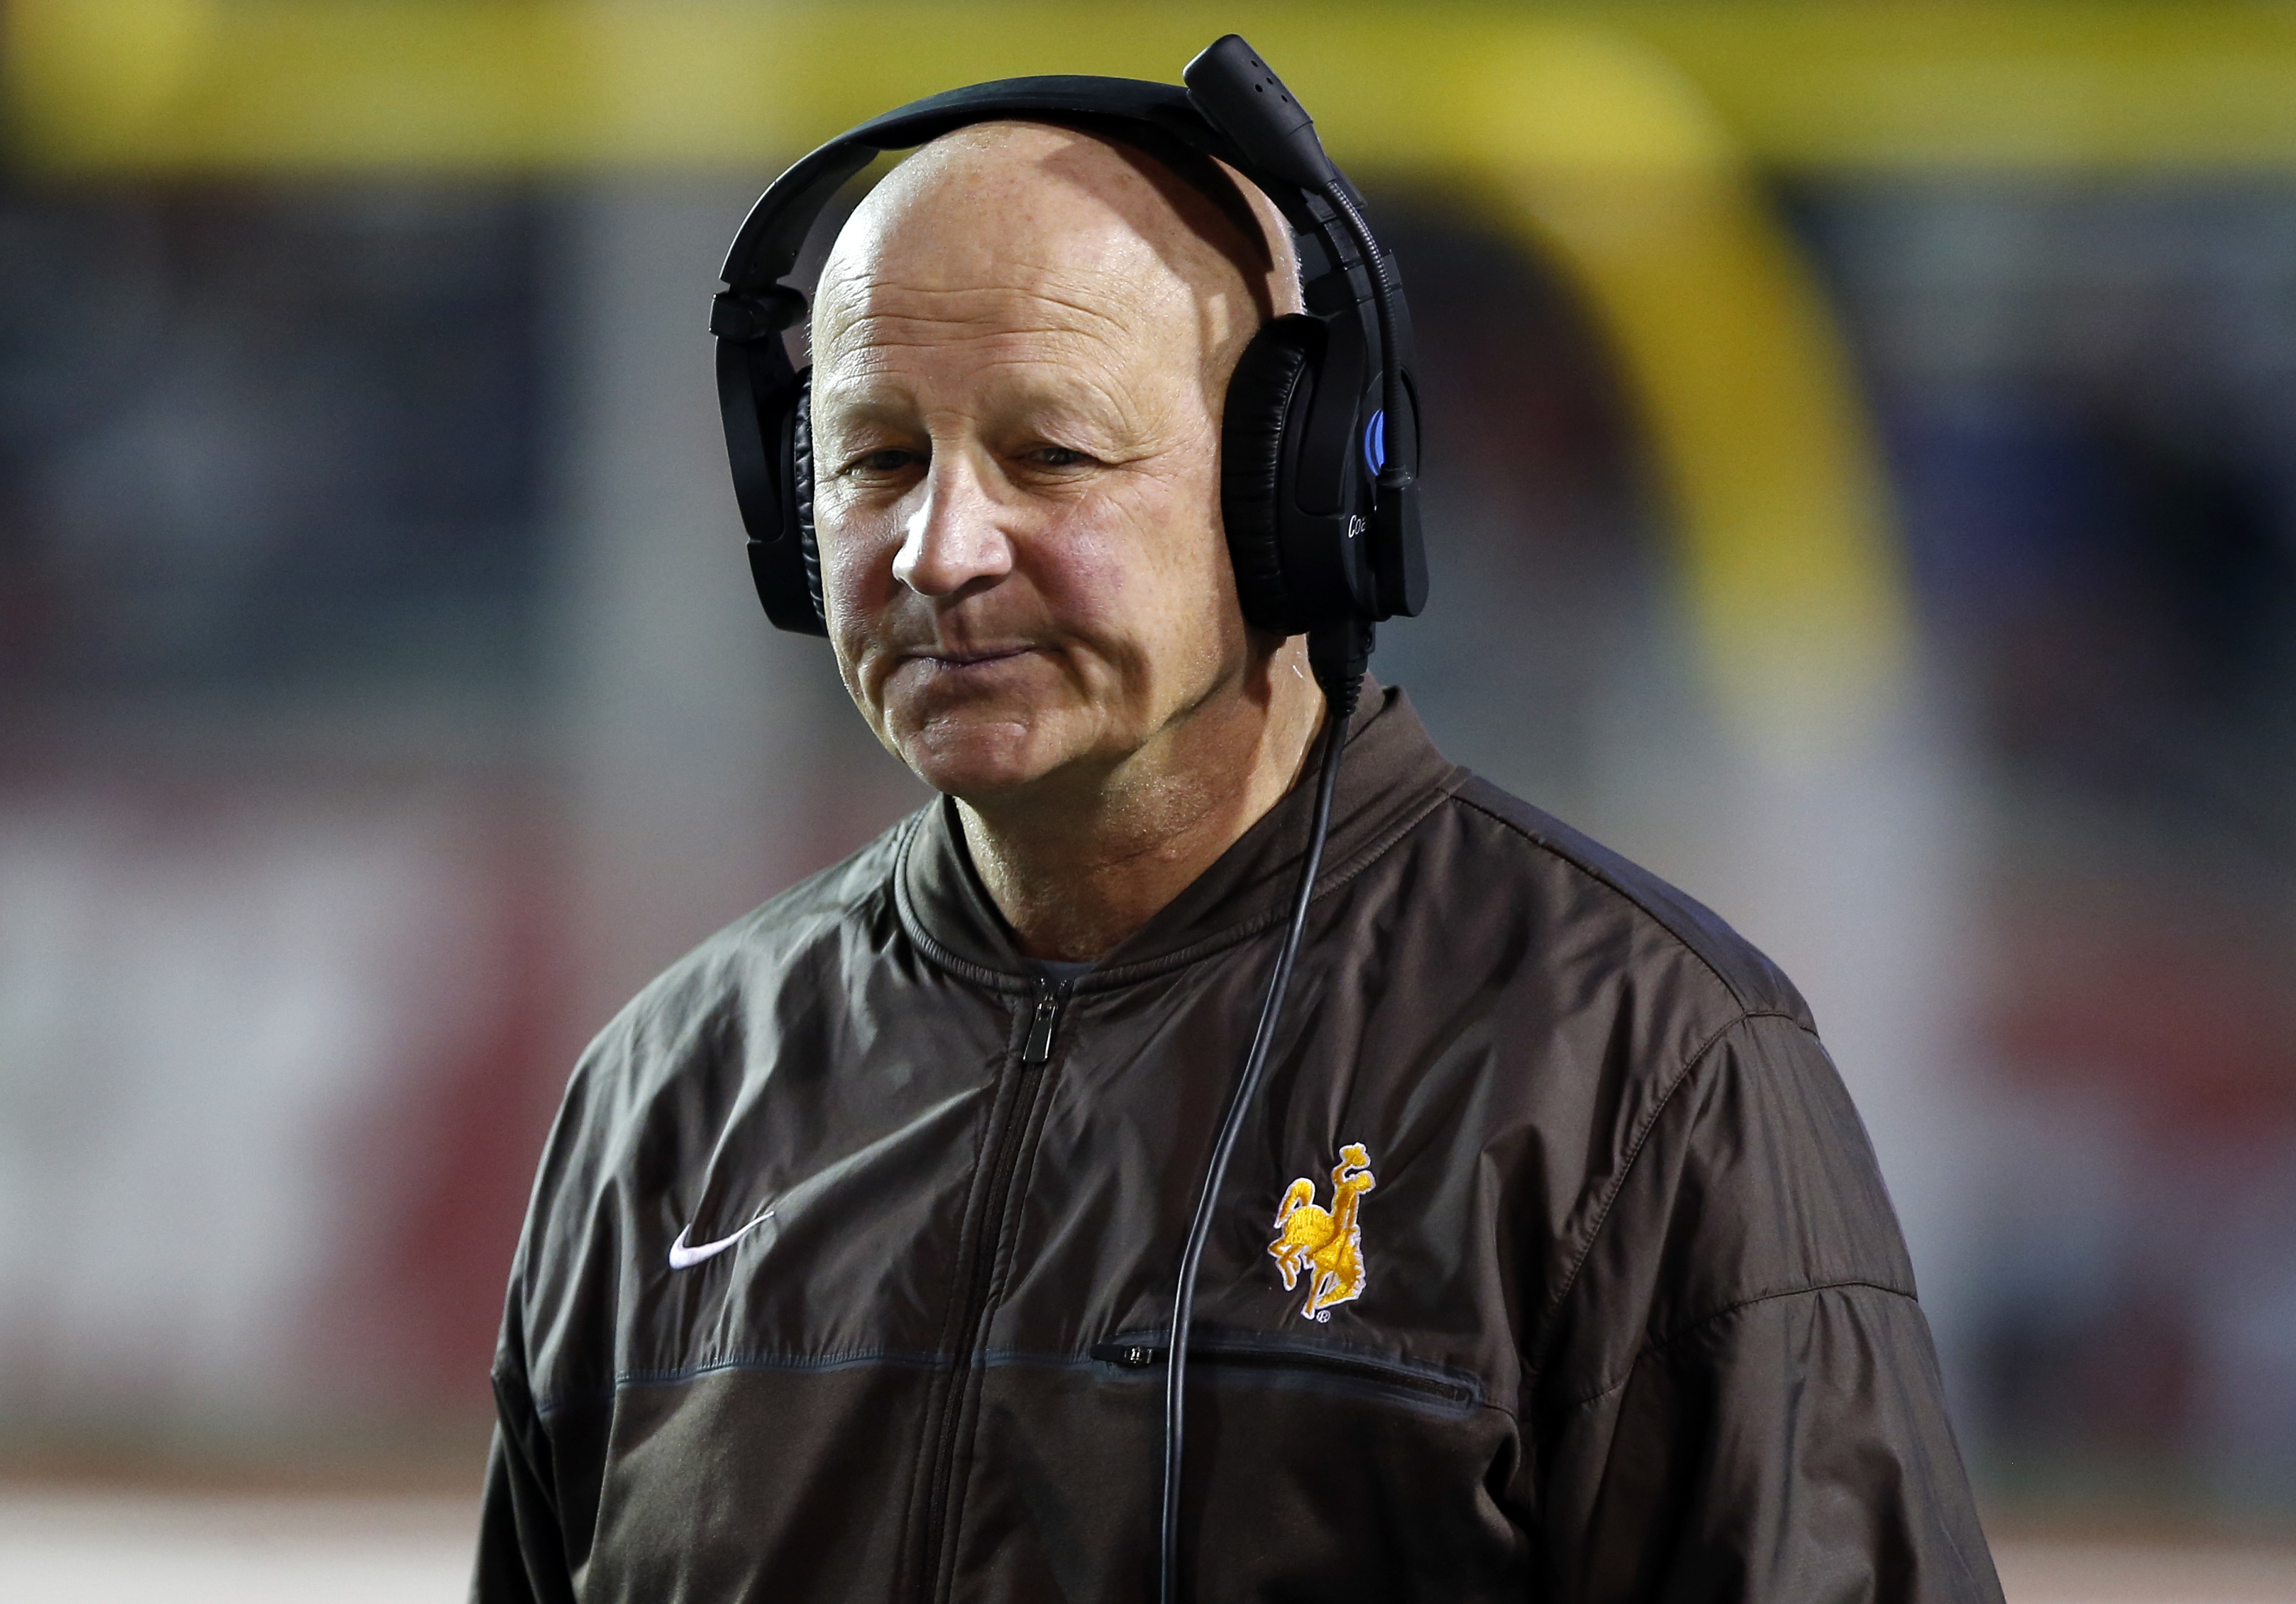 Wyoming coach Craig Bohl reacts after New Mexico scored their second touchdown in the first half of an NCAA college football game in Albuquerque, N.M., Saturday, Nov. 26, 2016. (AP Photo/Andres Leighton)